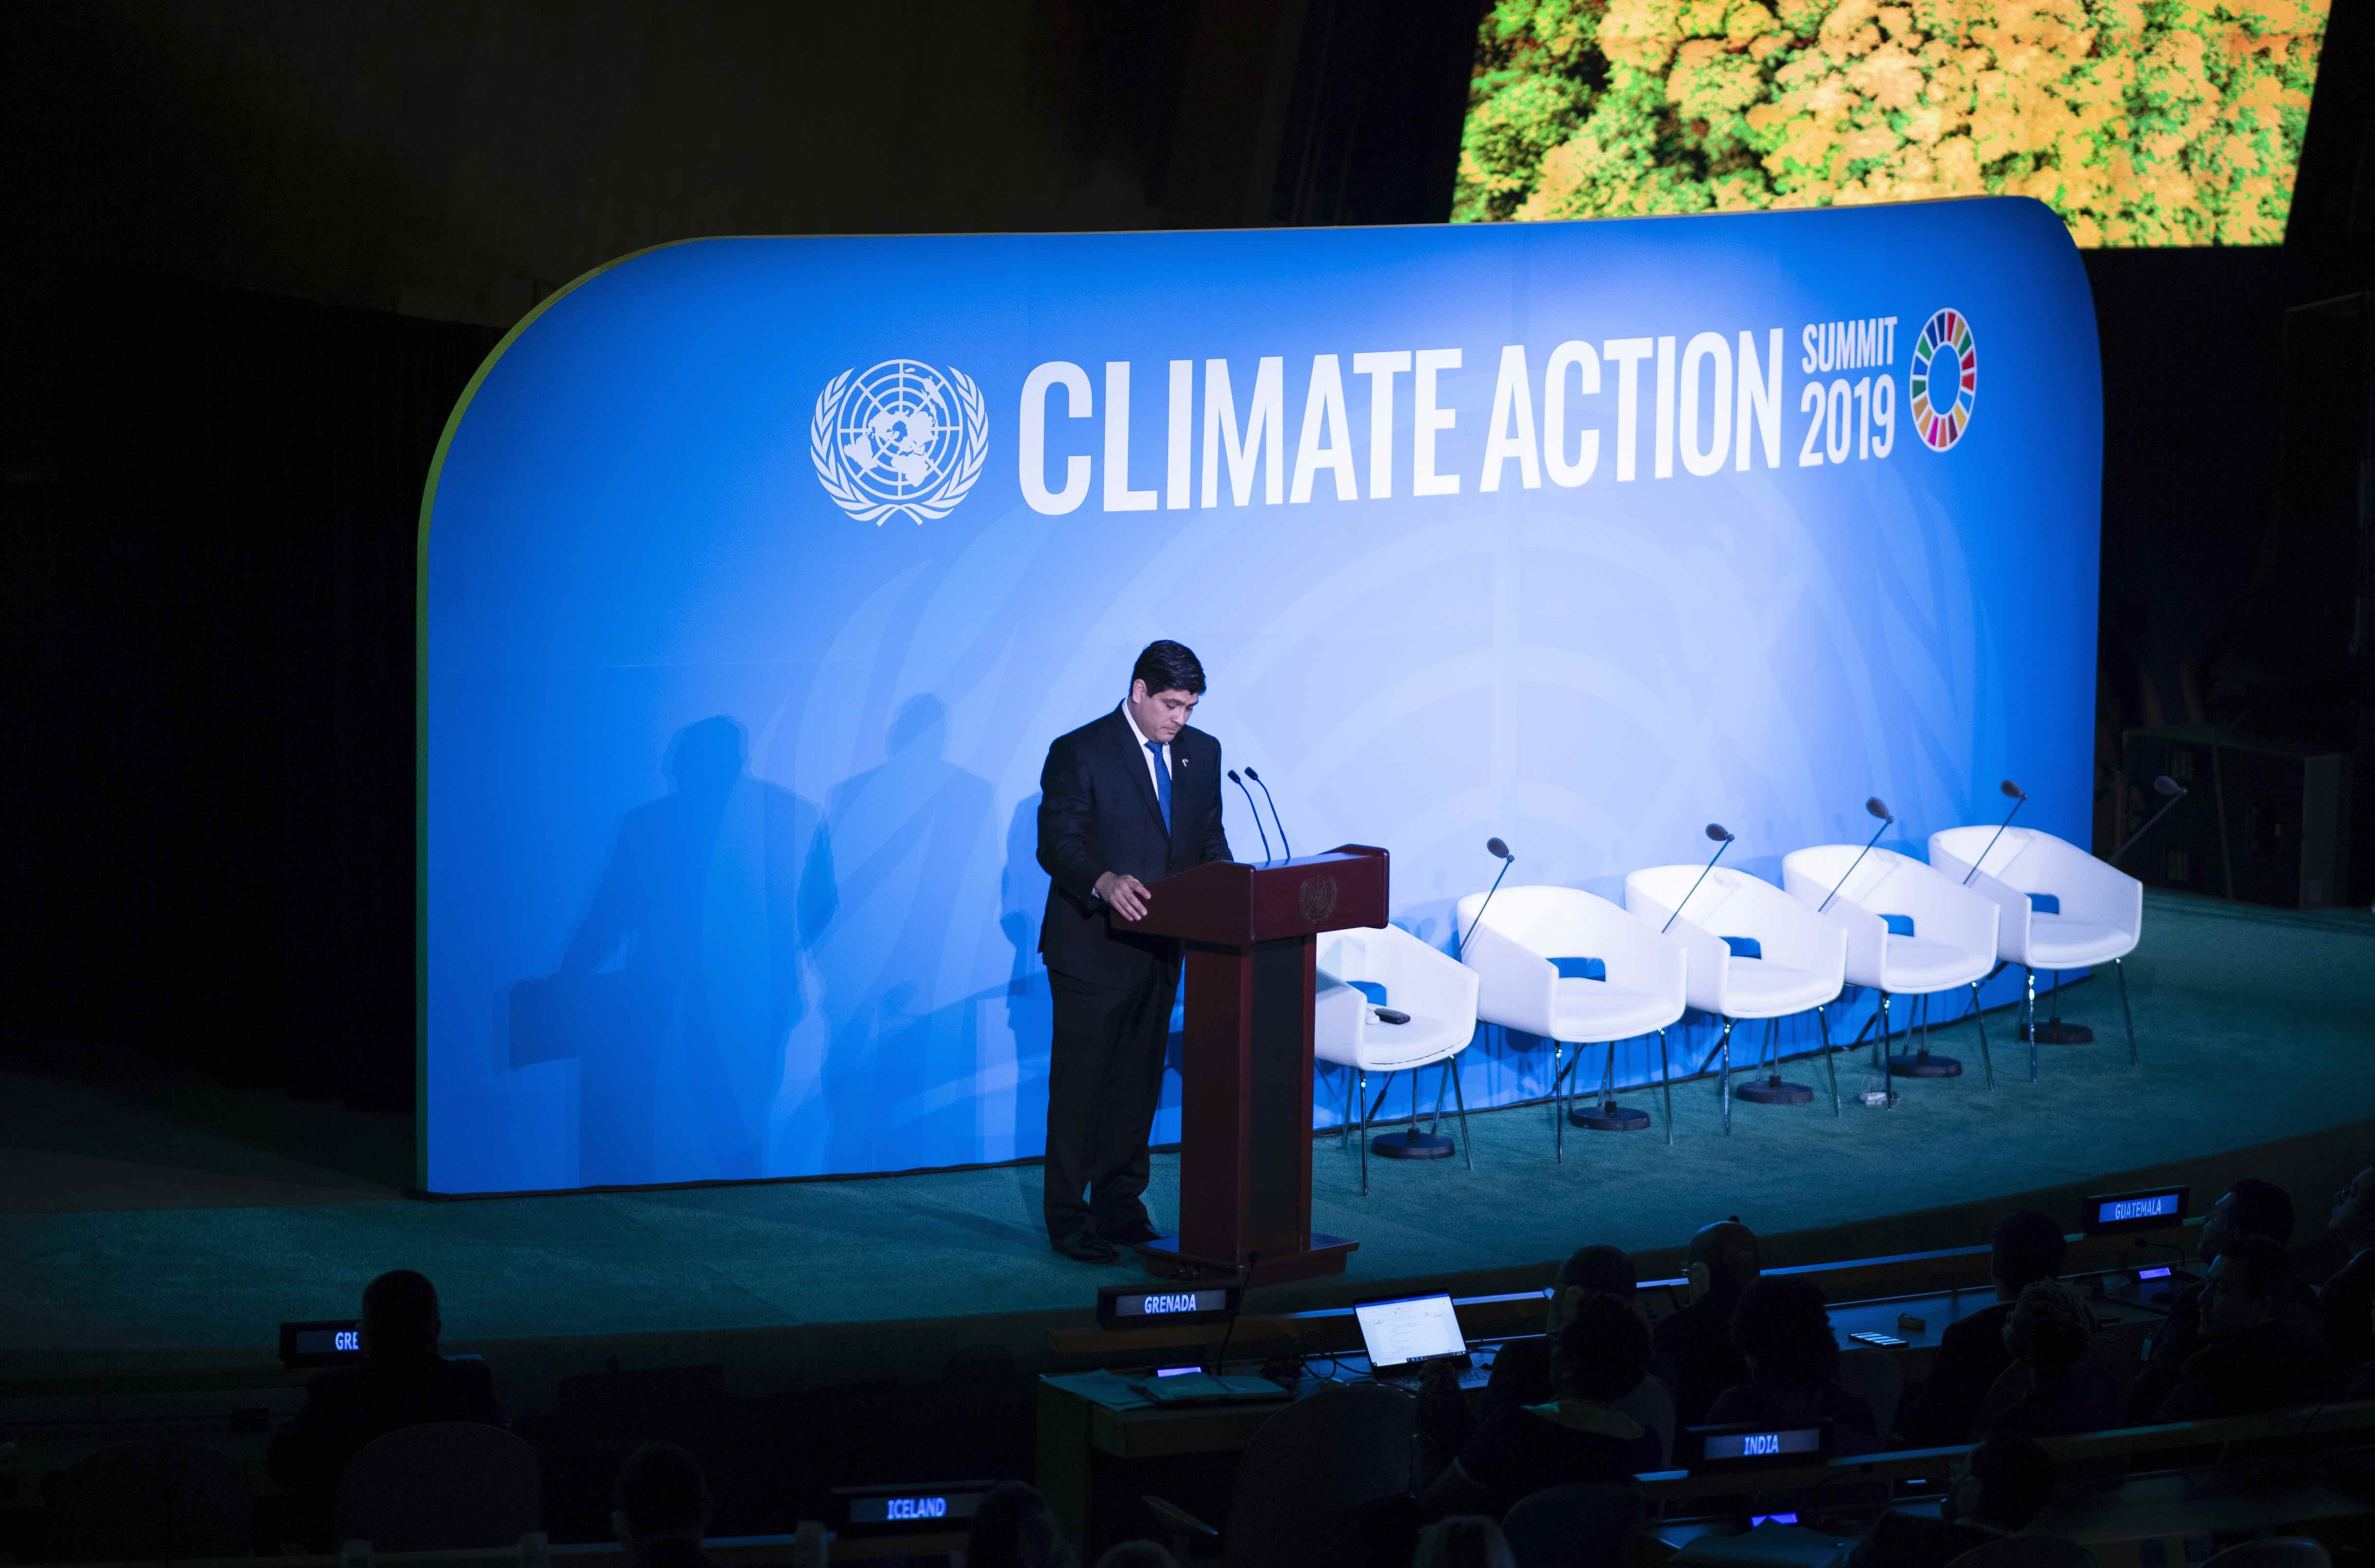 Carlos Alvarado speaks on climate change